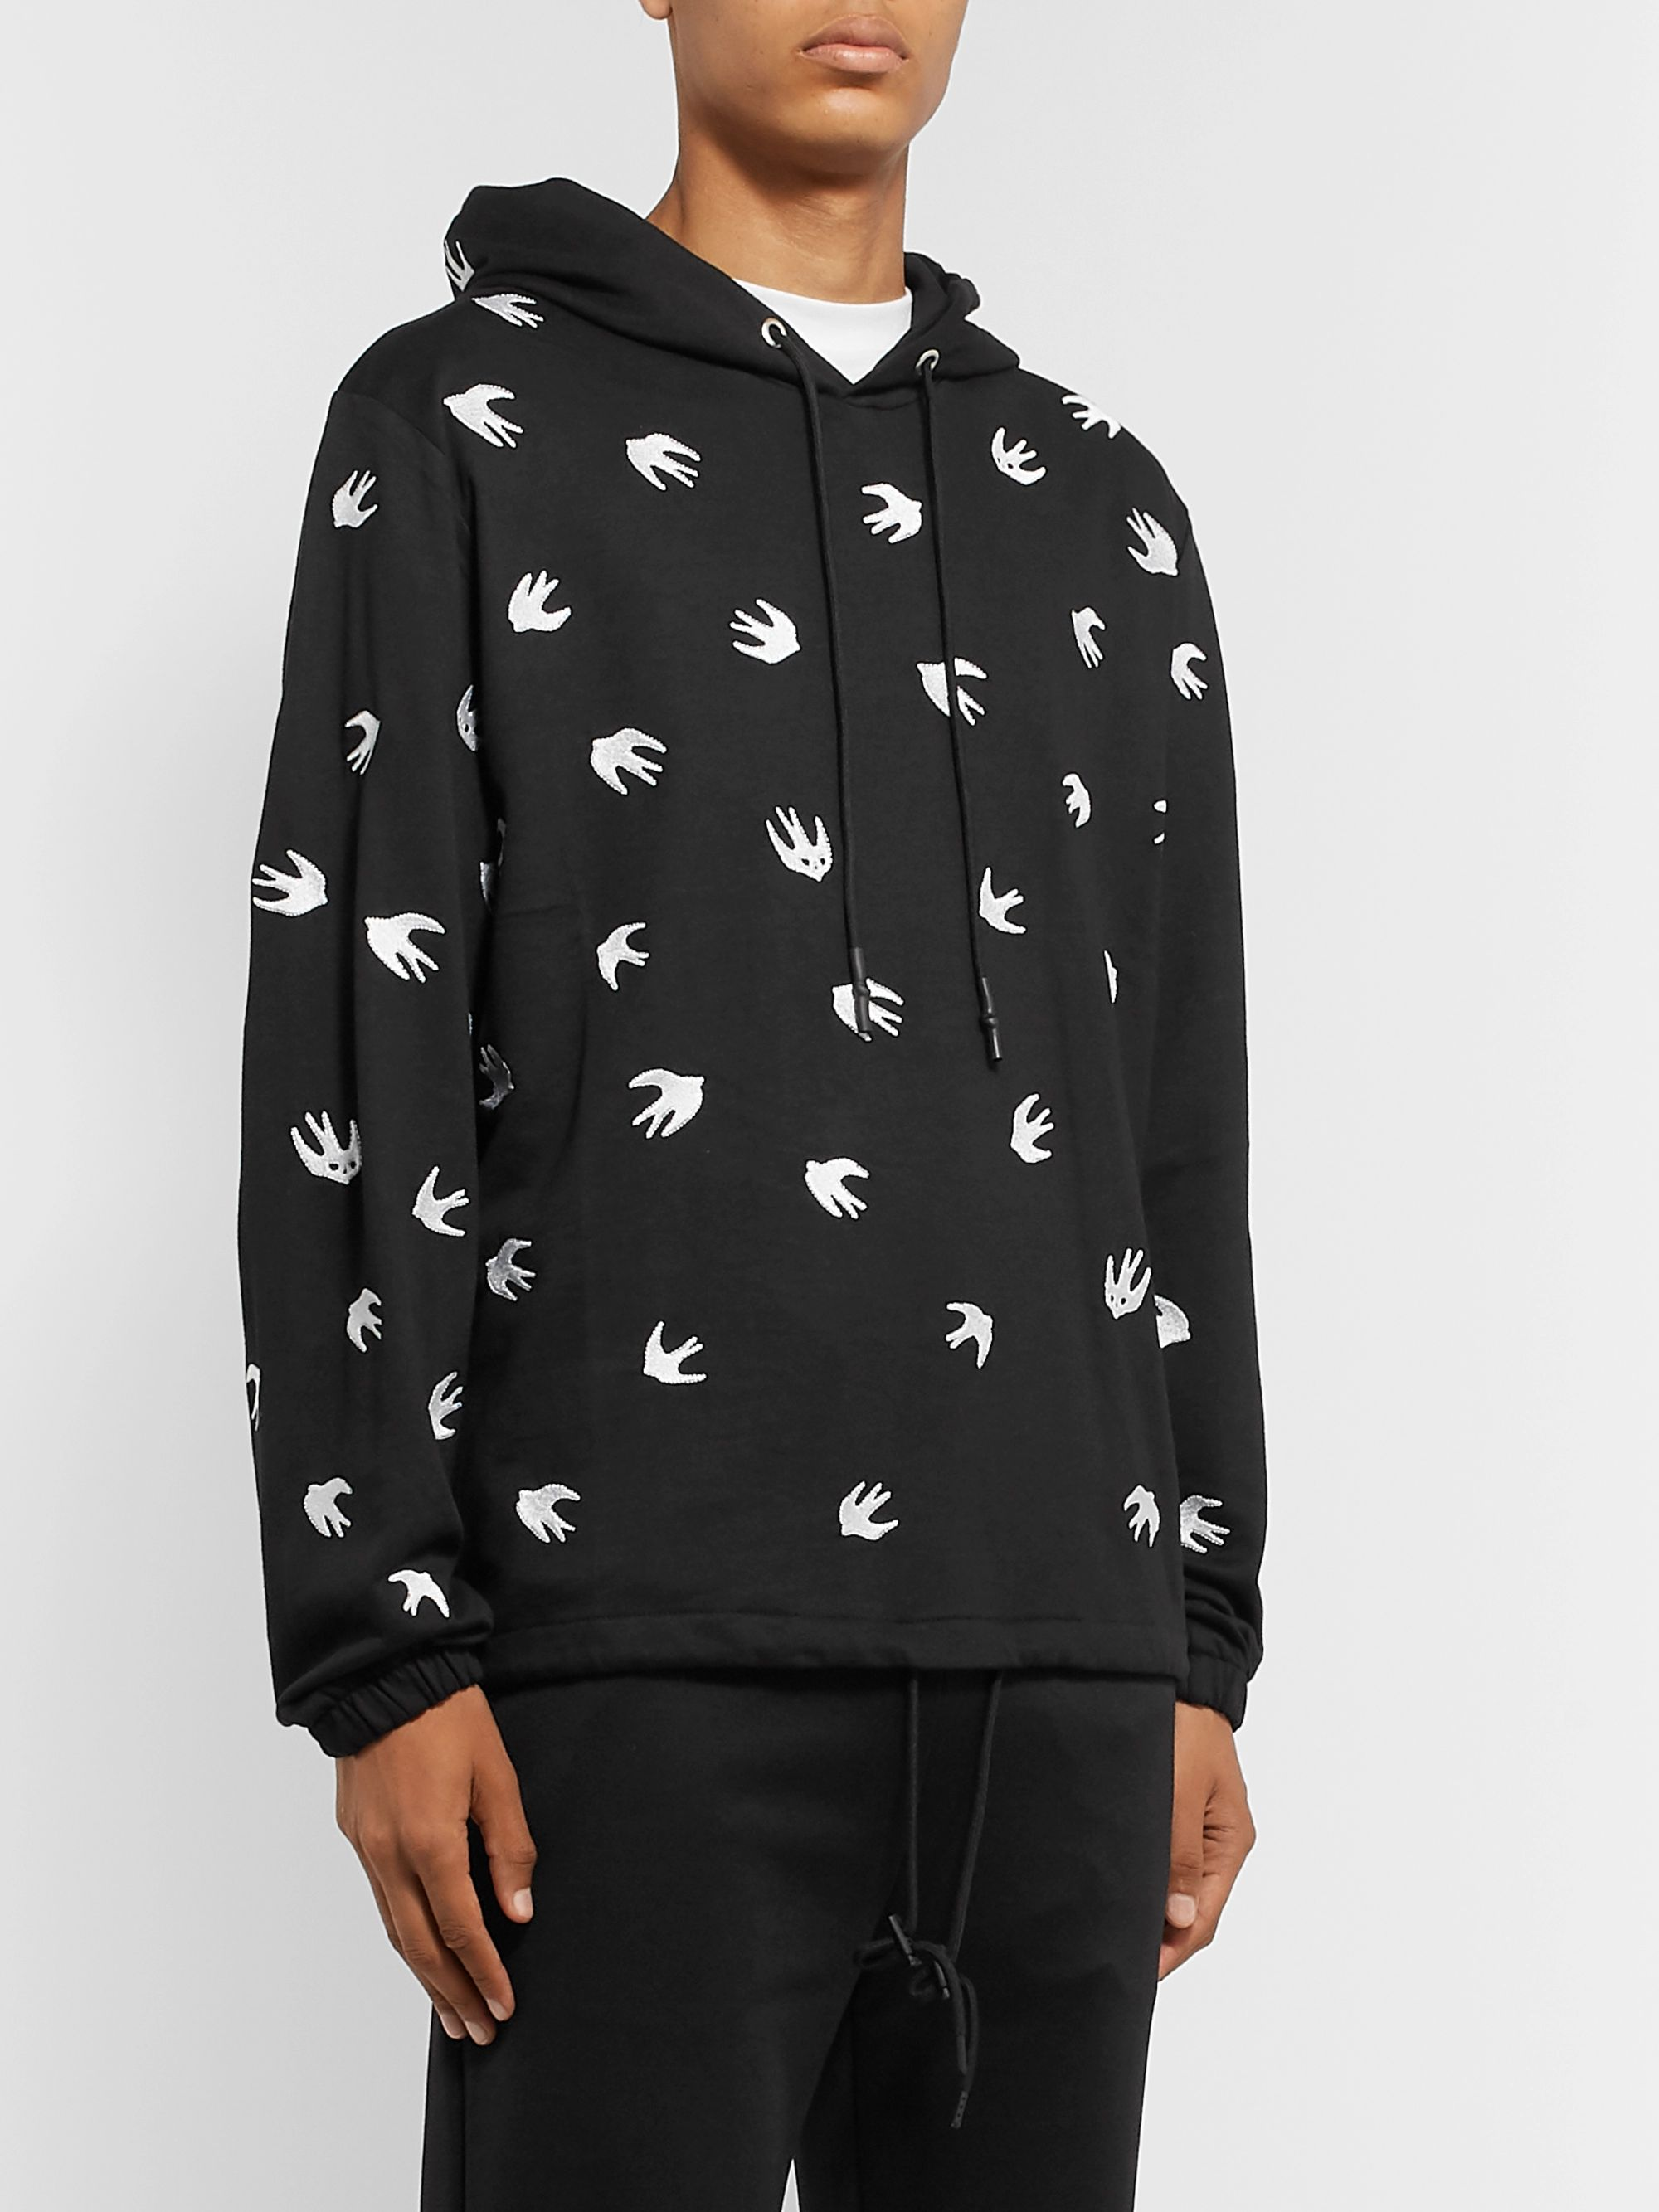 McQ Alexander McQueen Embroidered Loopback Cotton and Modal-Blend Jersey Hoodie